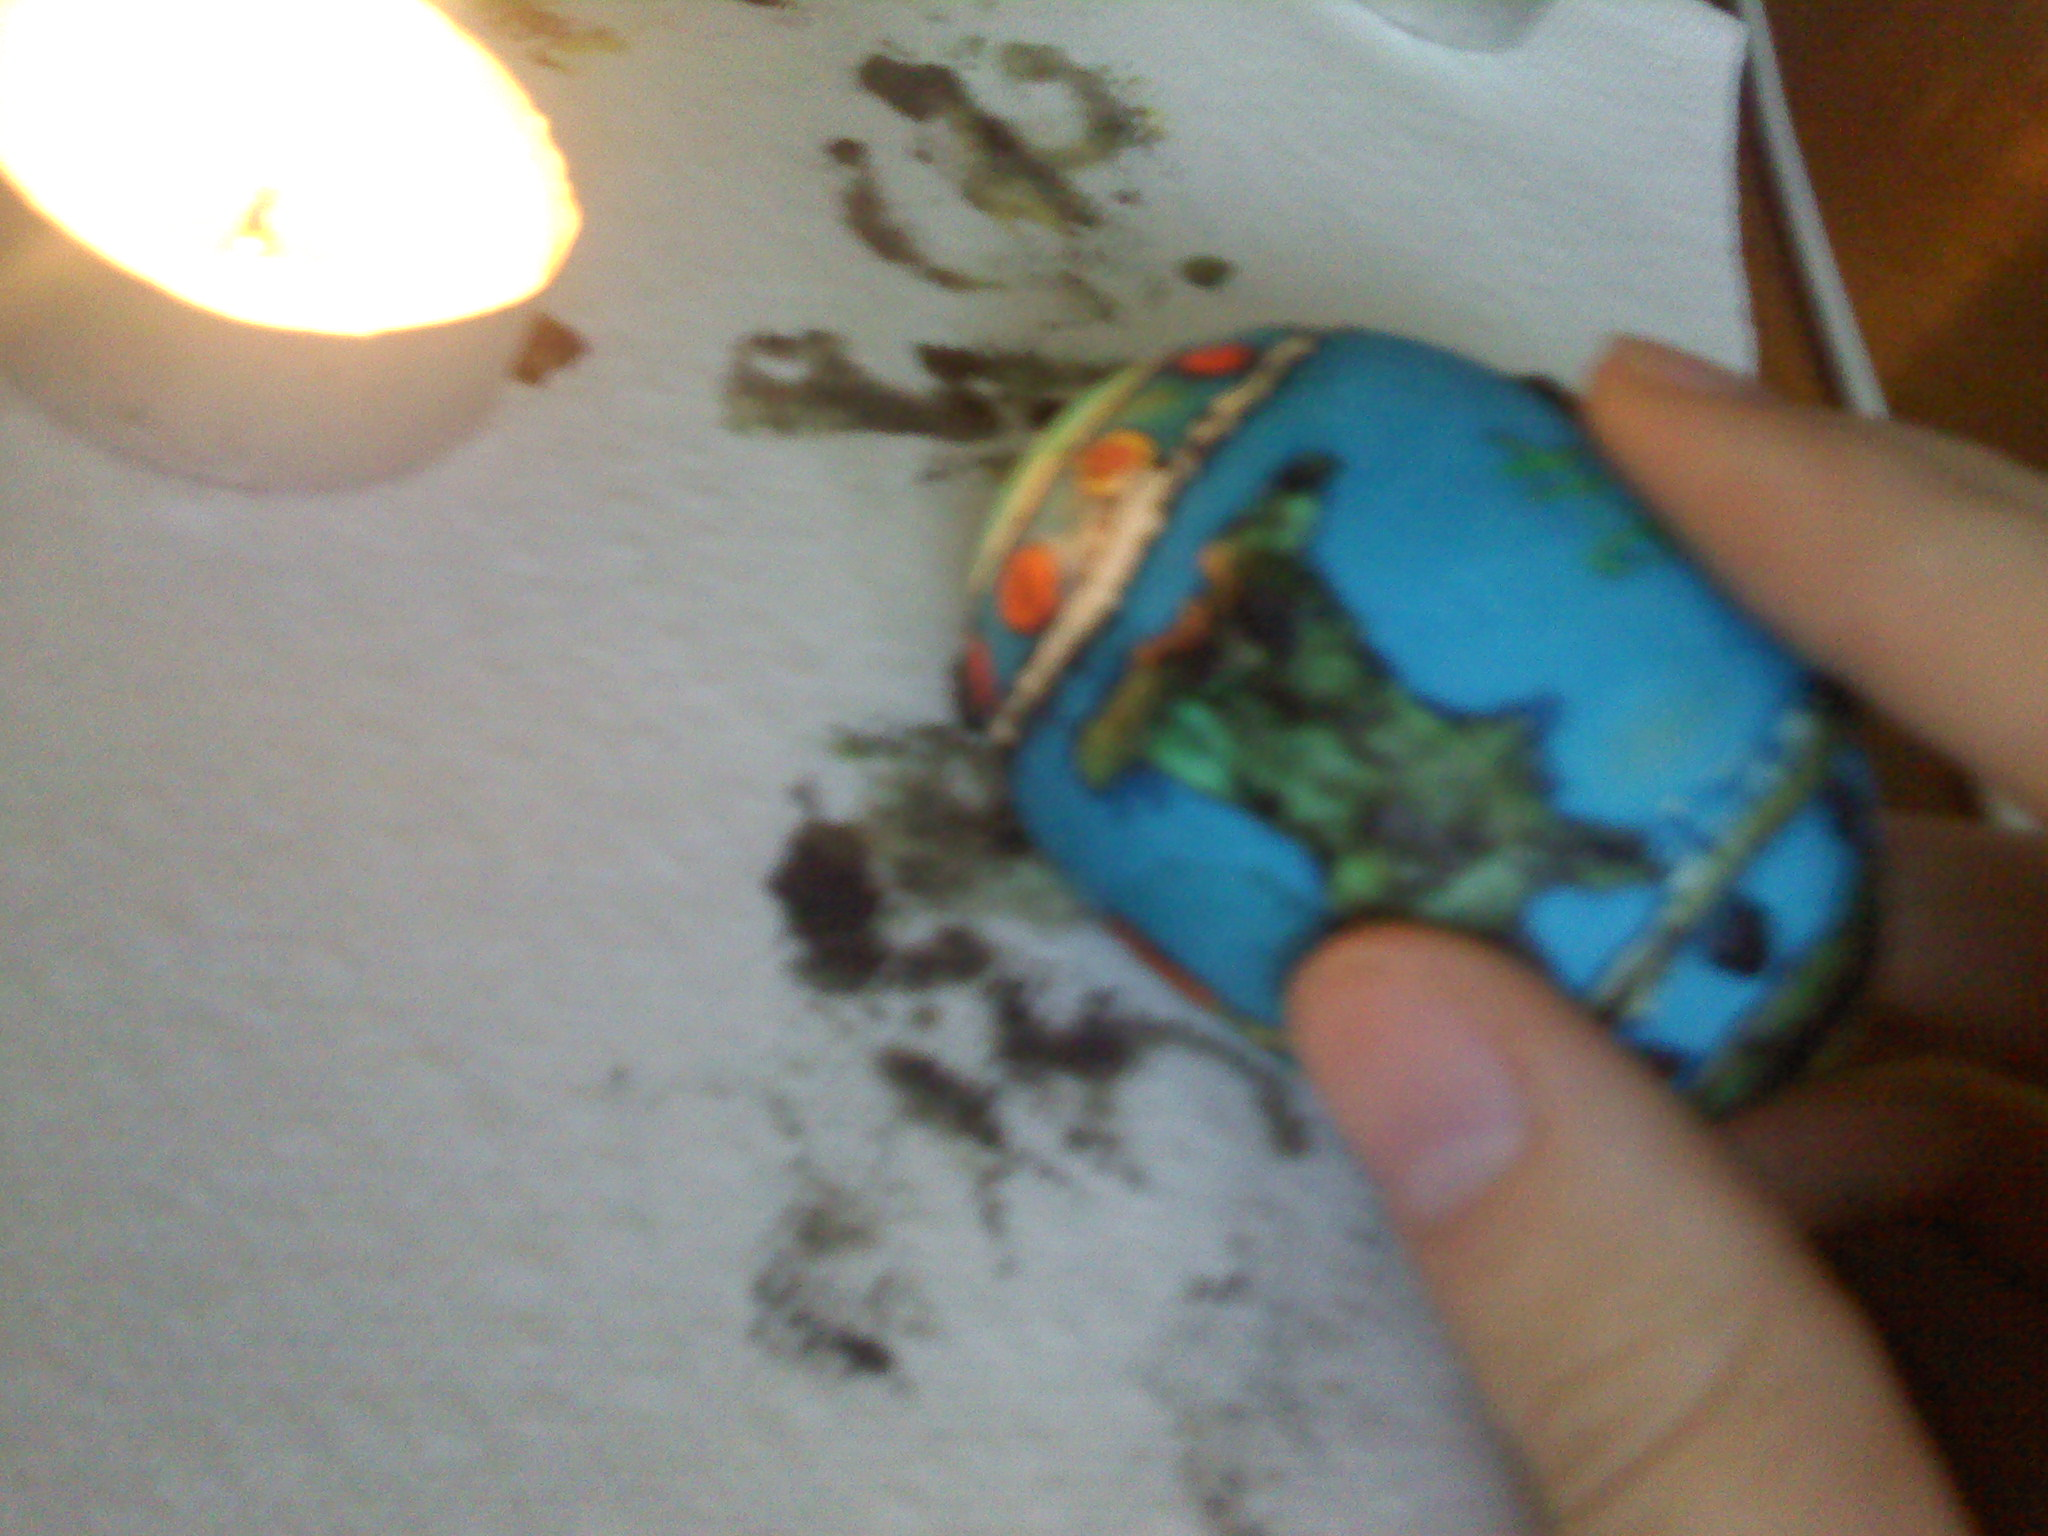 Picture of Wax Removal